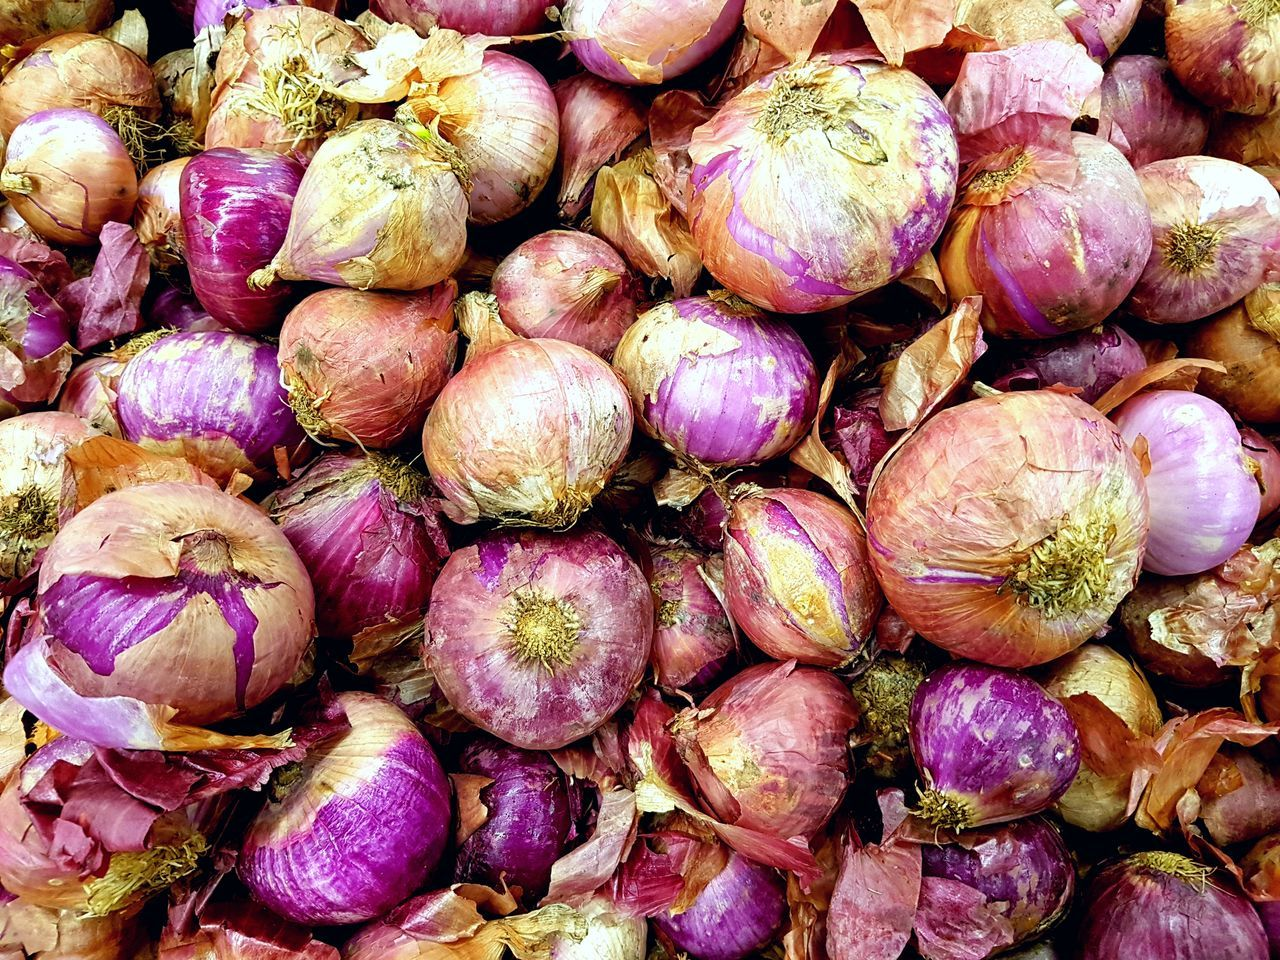 Still Life Close-up Healthy Eating Vegetable Freshness Food Full Frame Plants Agricultural Agriculture Agronomy Red Onions